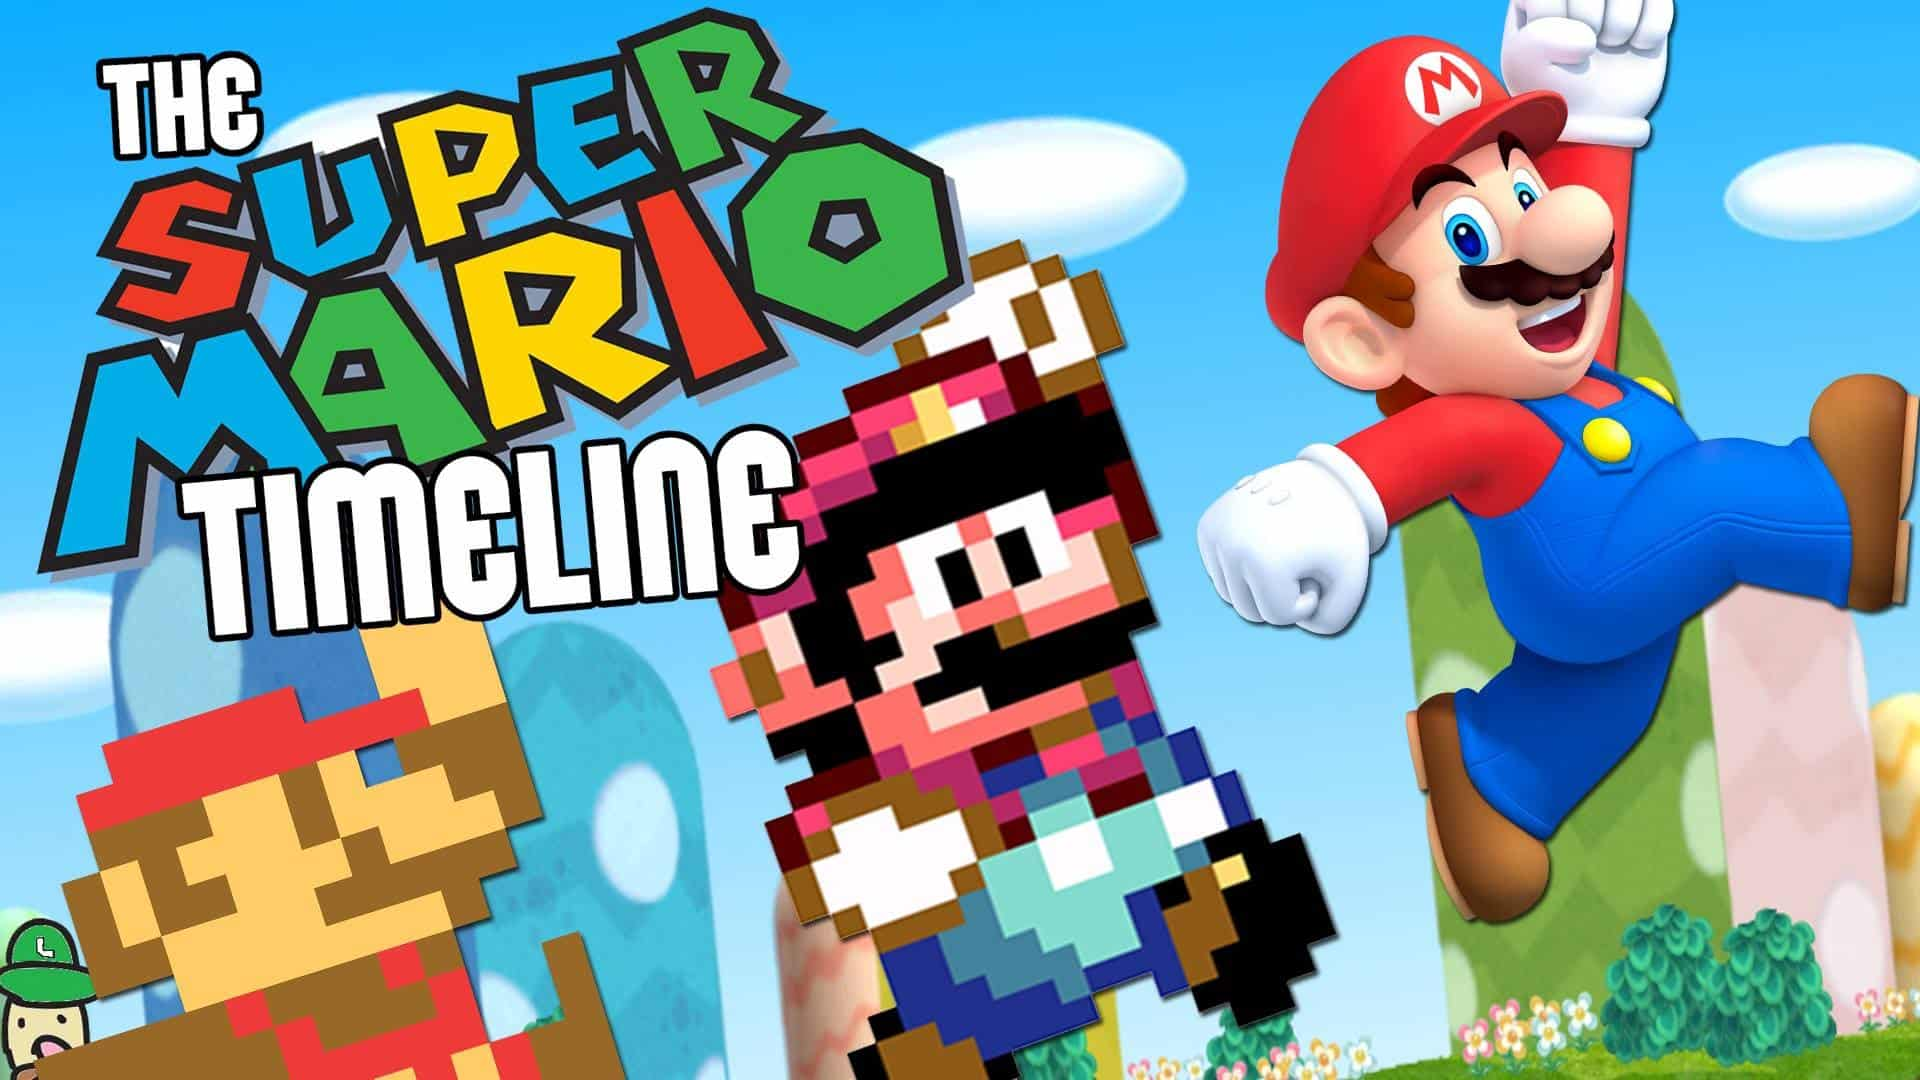 Nintnedo Fall Wallpapers Video The Entire Nintendo Mario Game Series In